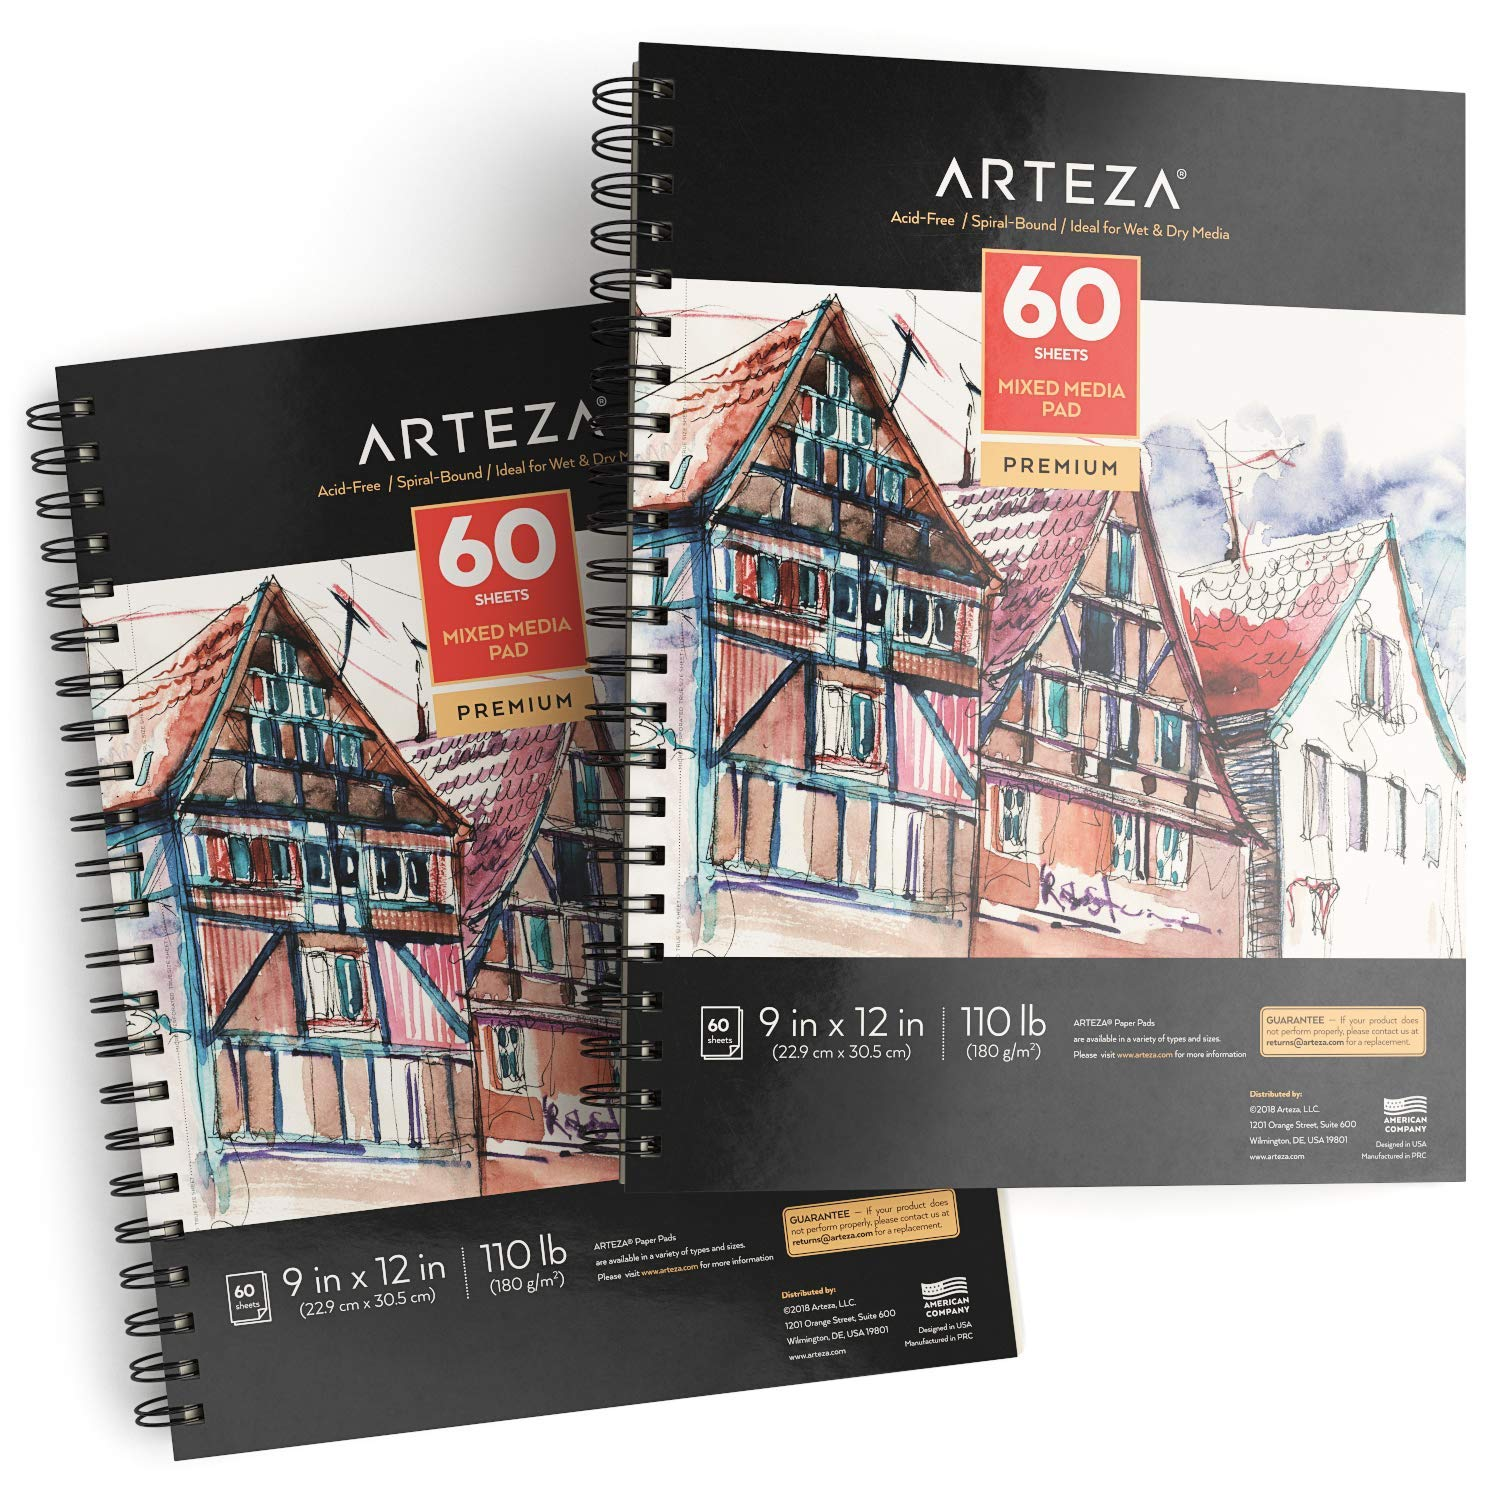 ARTEZA 9x12'' Mixed Media Sketch Pad, 2 Pack, 110lb/180gsm, 120 Sheets (Acid-Free, Micro-Perforated), Spiral-Bound Pad, Ideal for Wet and Dry Media, Sketching, Drawing, and Painting by ARTEZA